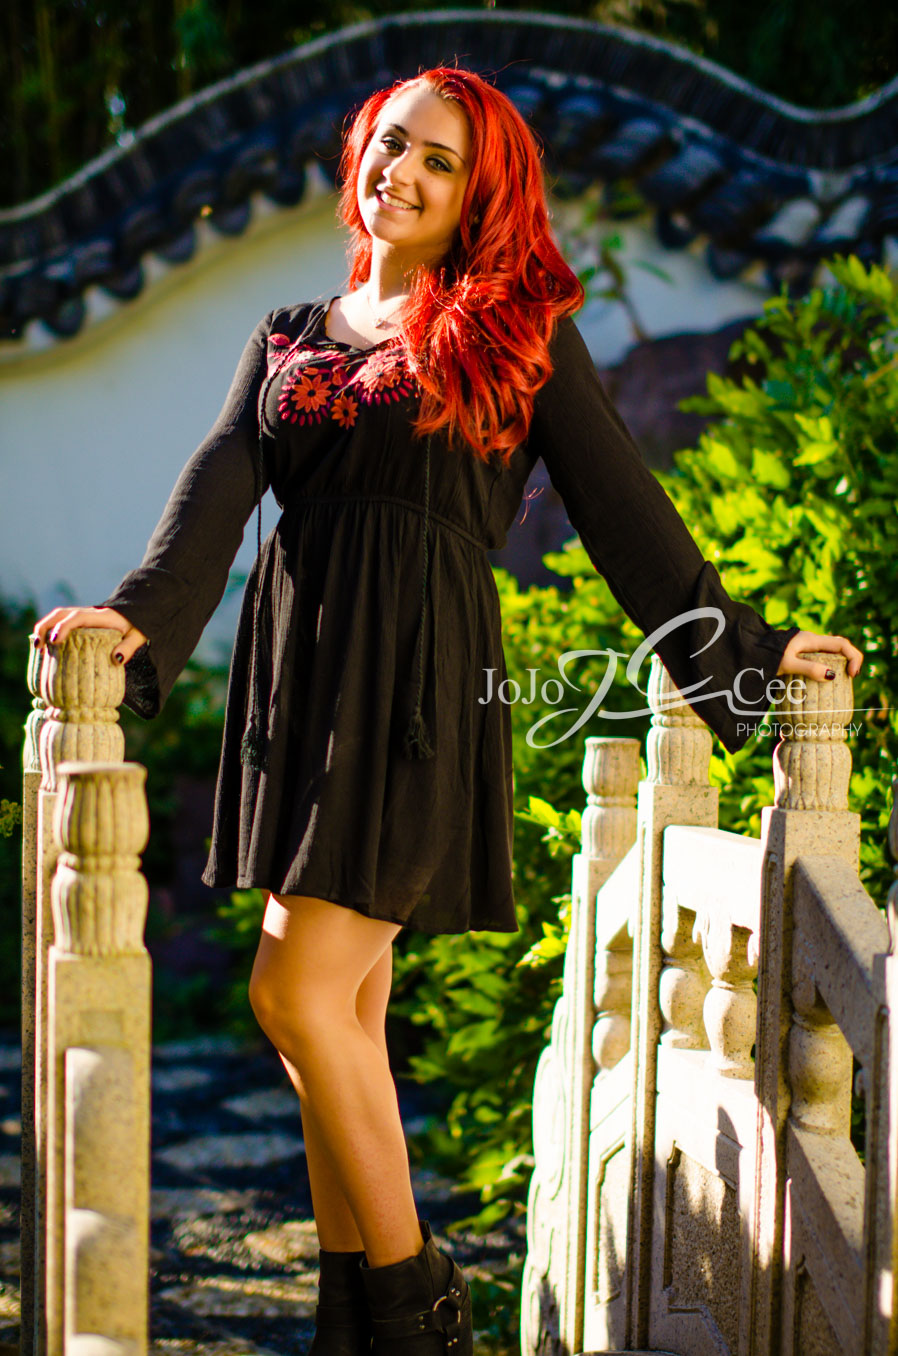 Nikki_Shay_Sept2014-23.jpg